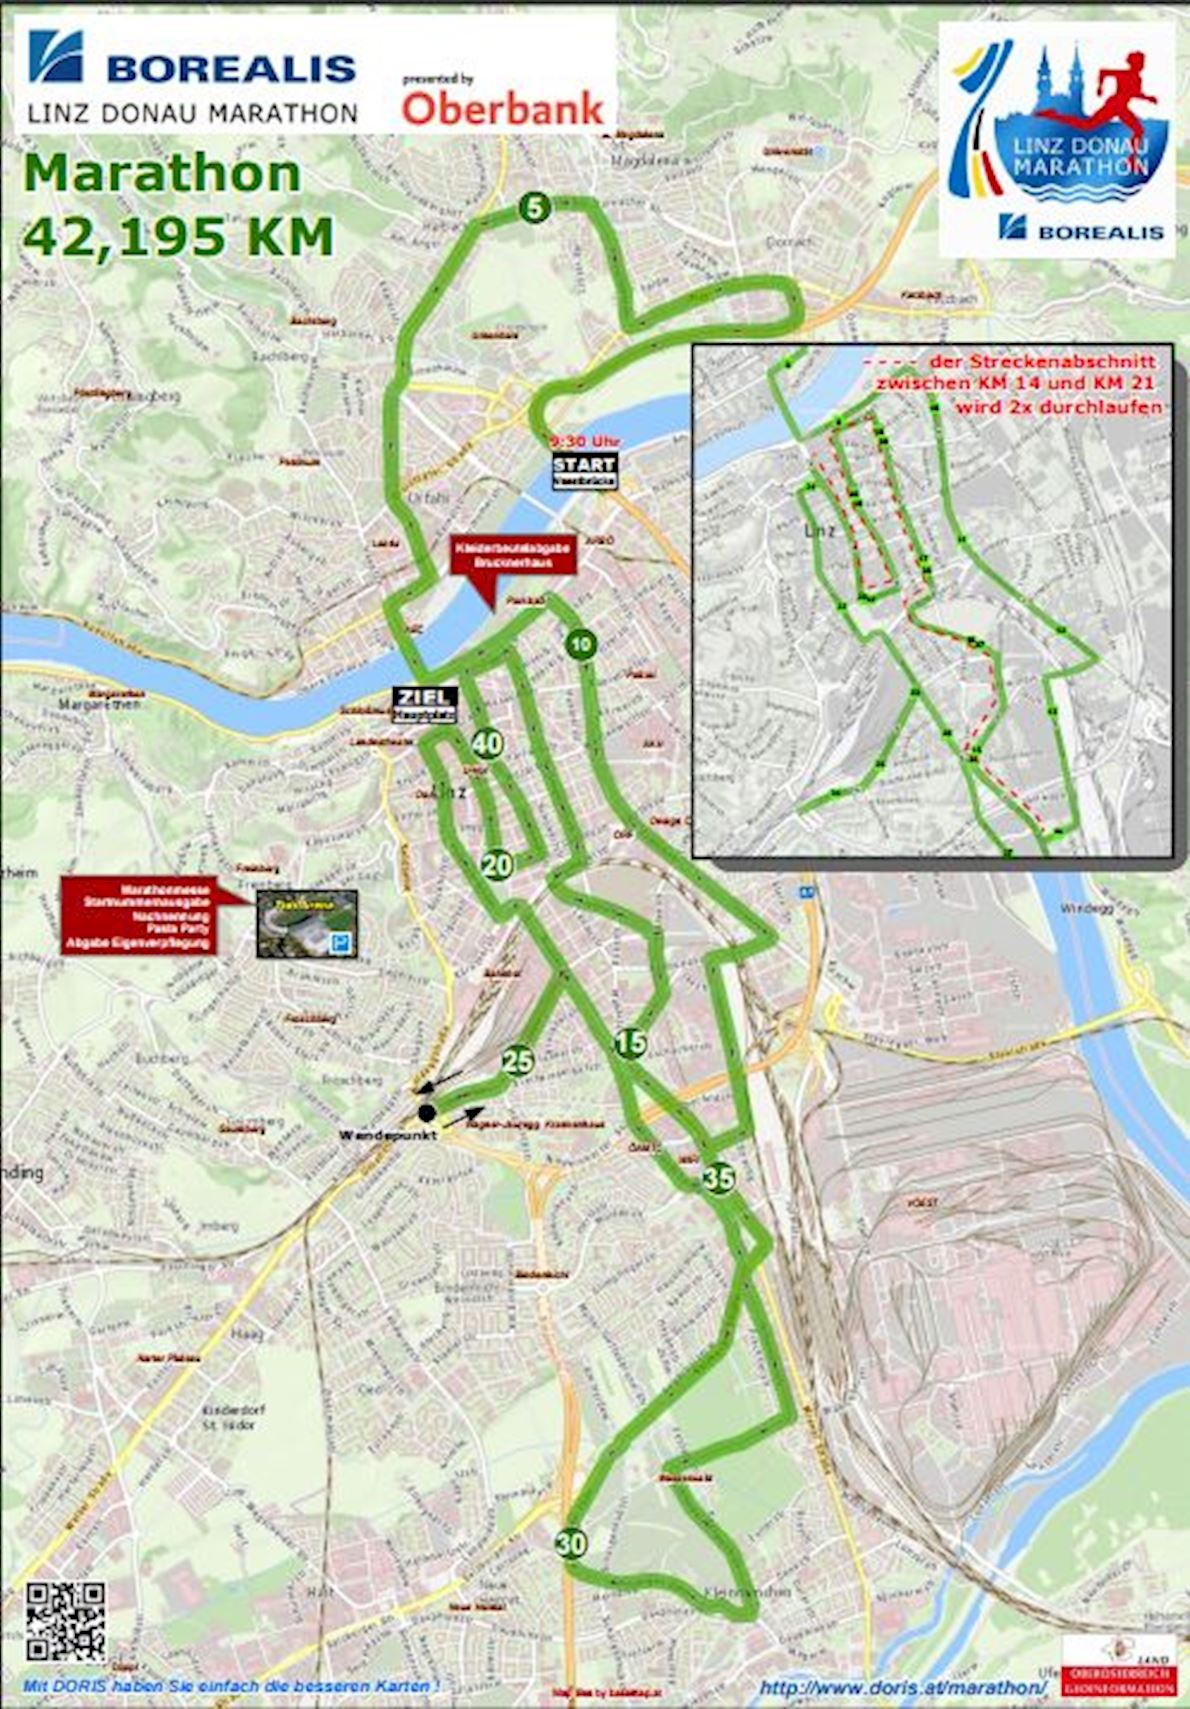 Oberbank Linz Donau Marathon Route Map